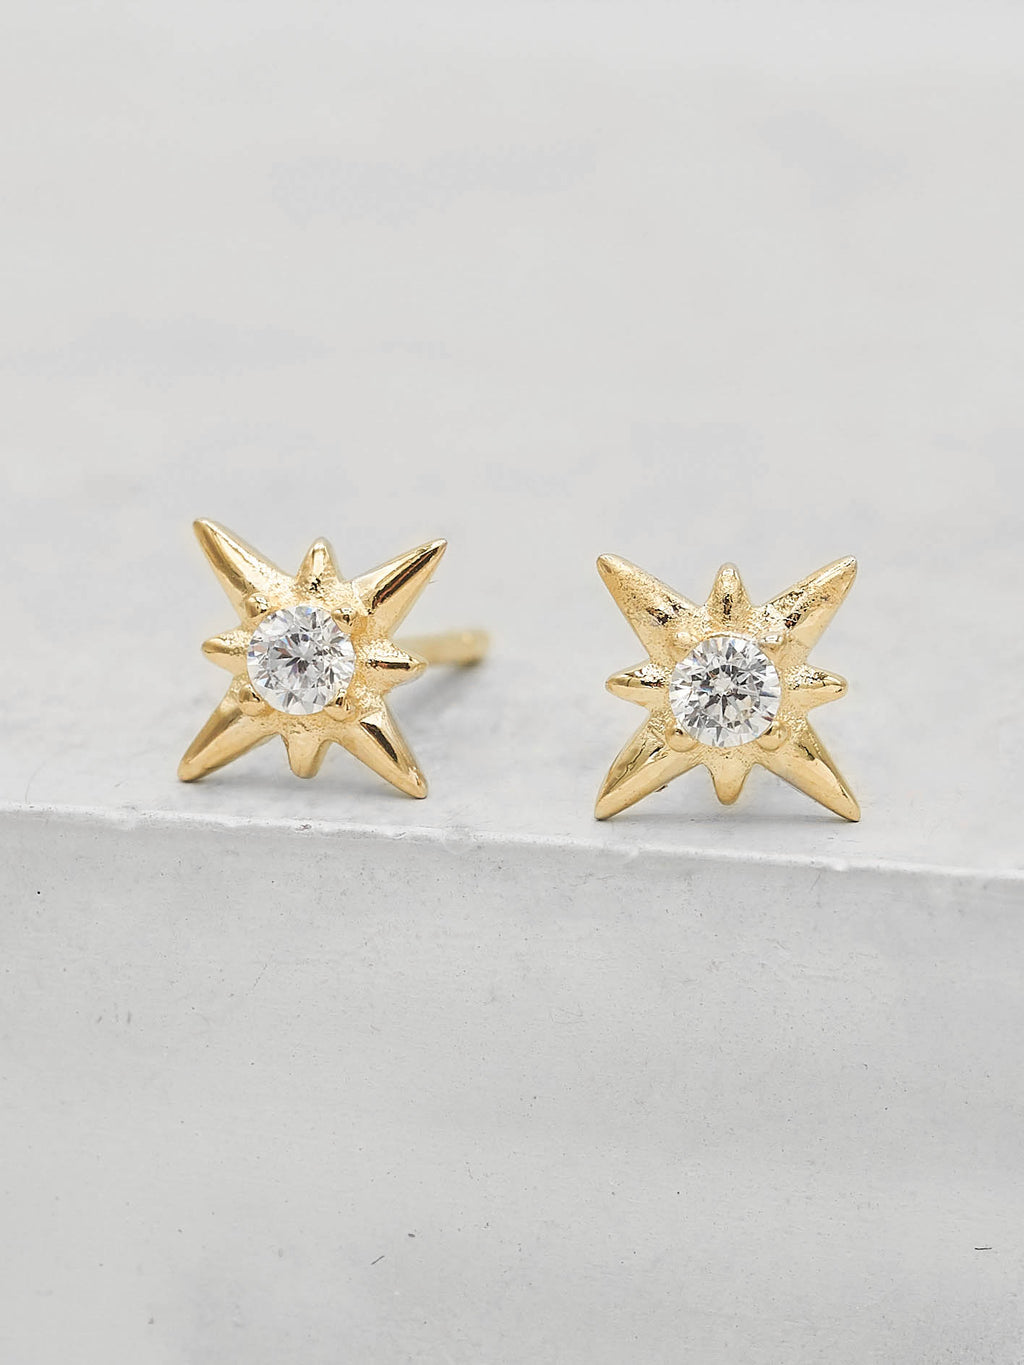 North Star Design Stud with Round White CZ Minimalist Style Dainty Stud Earrings by The Faint hearted jewelry